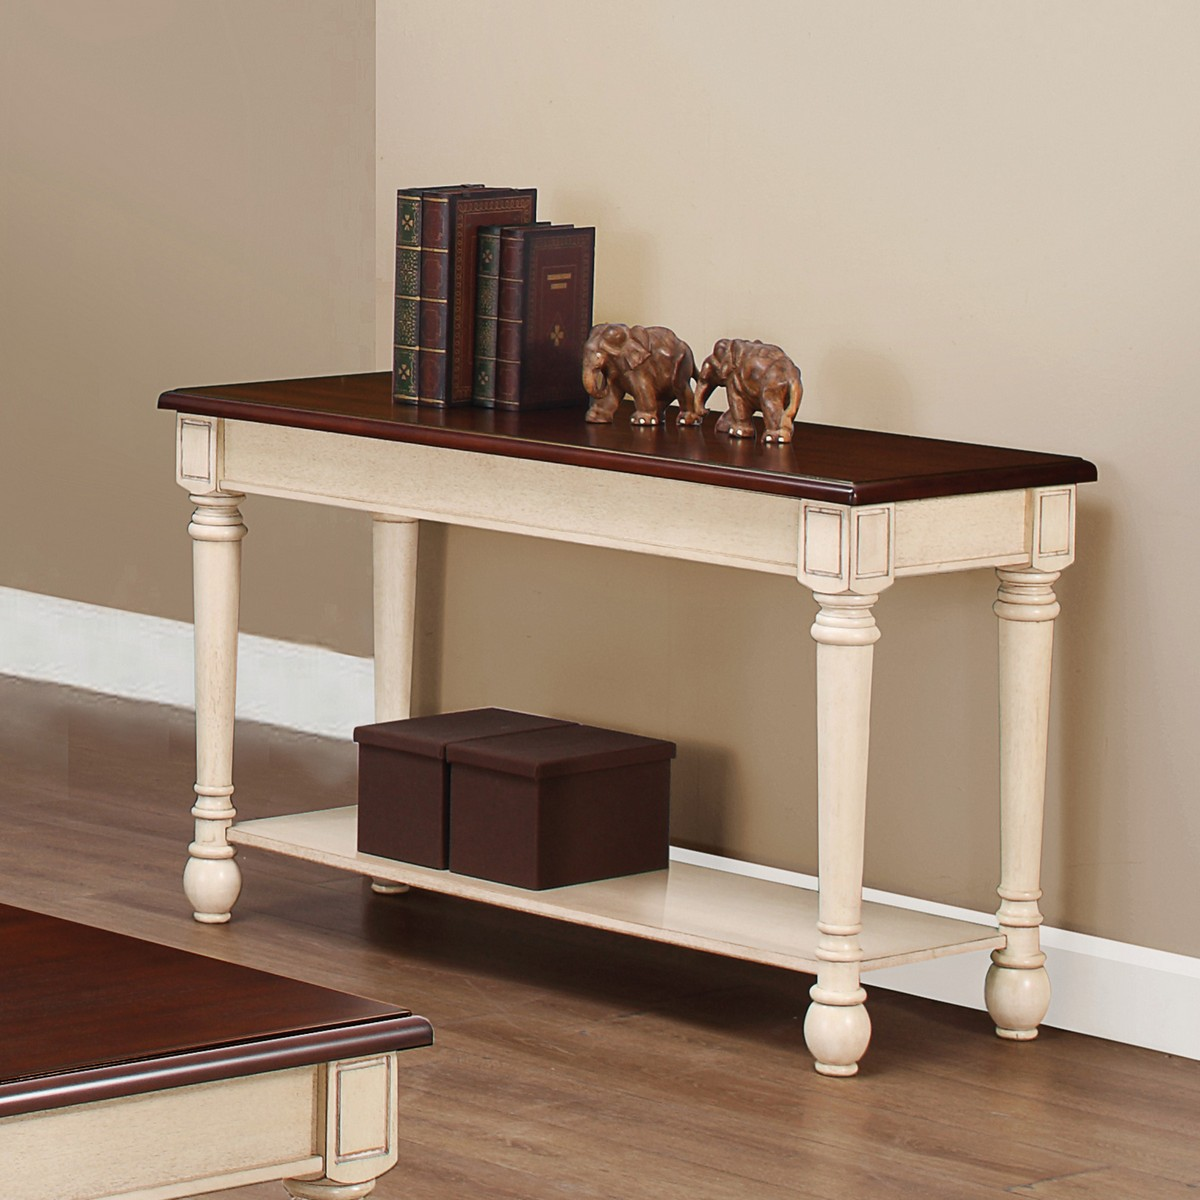 Coaster 704419 Sofa Table  Dark Brown Antique White 704419 at Homelementcom